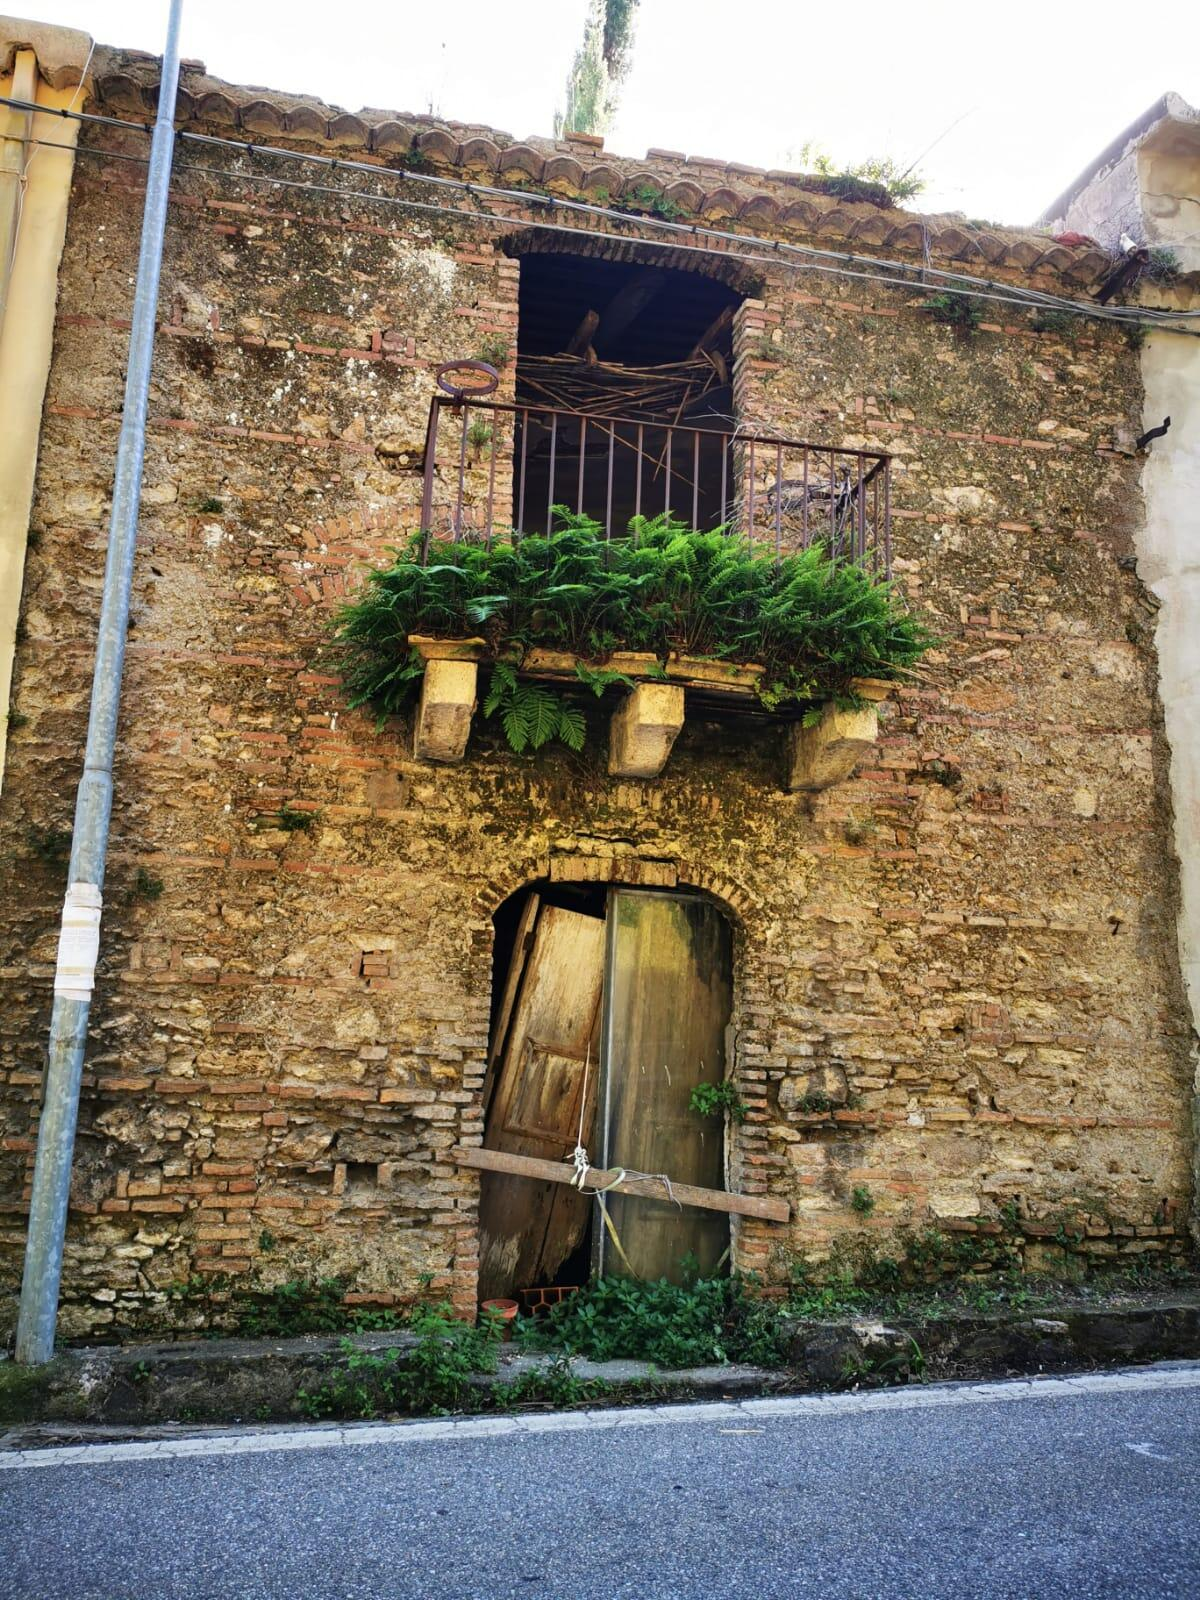 Ruins-fragile-of-Giacoppos-old-family-house-in-Gesso-c-Silvia-1